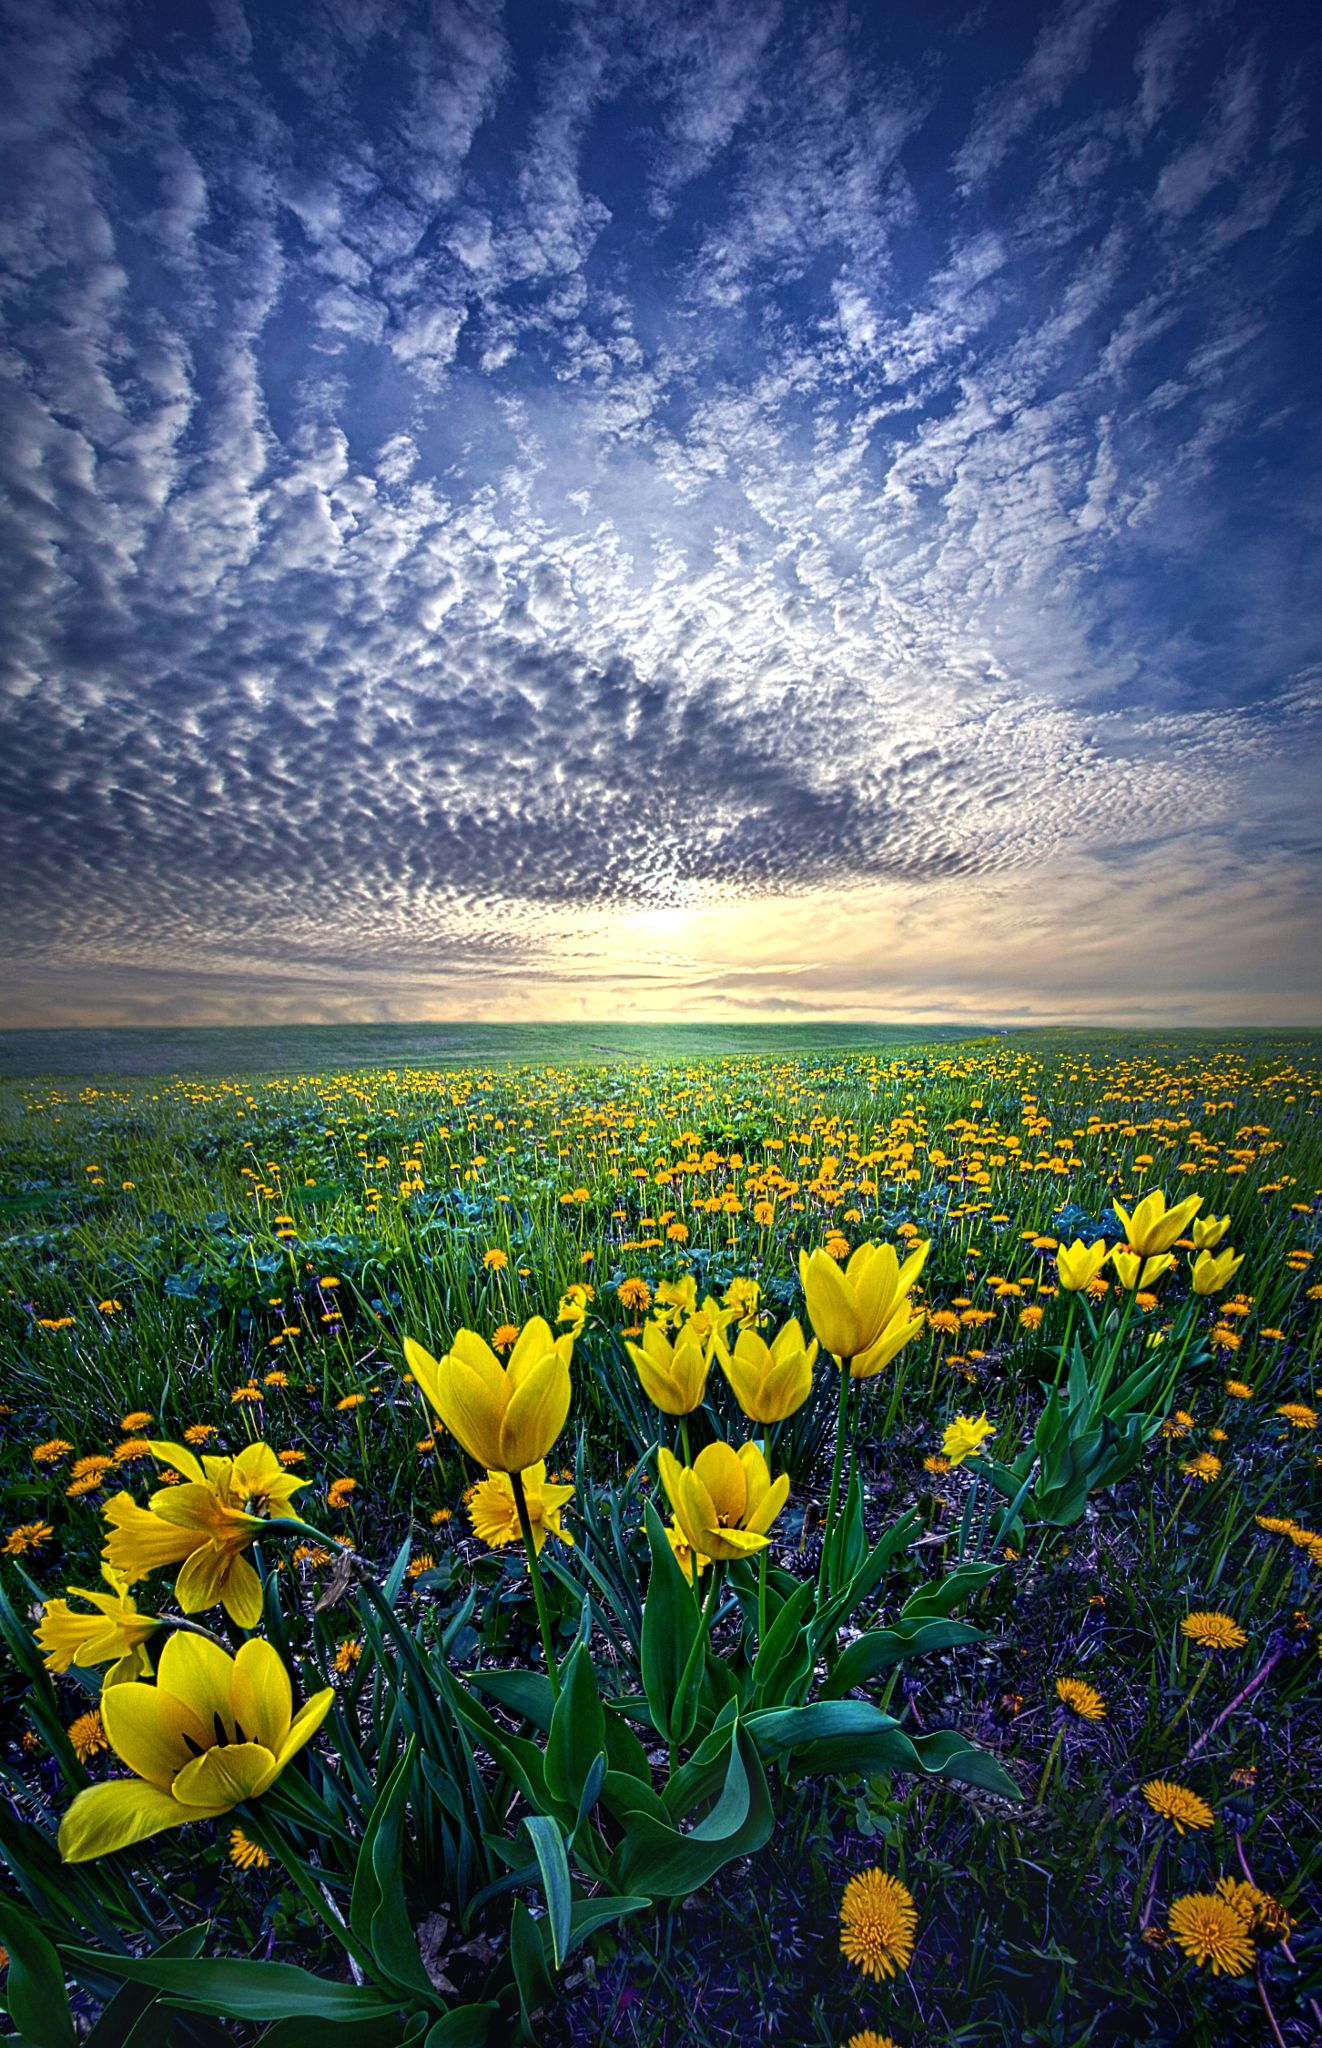 Landscape Photography Spring Landscapephotographytips Beautiful Nature Nature Scenes Beautiful Nature Pictures